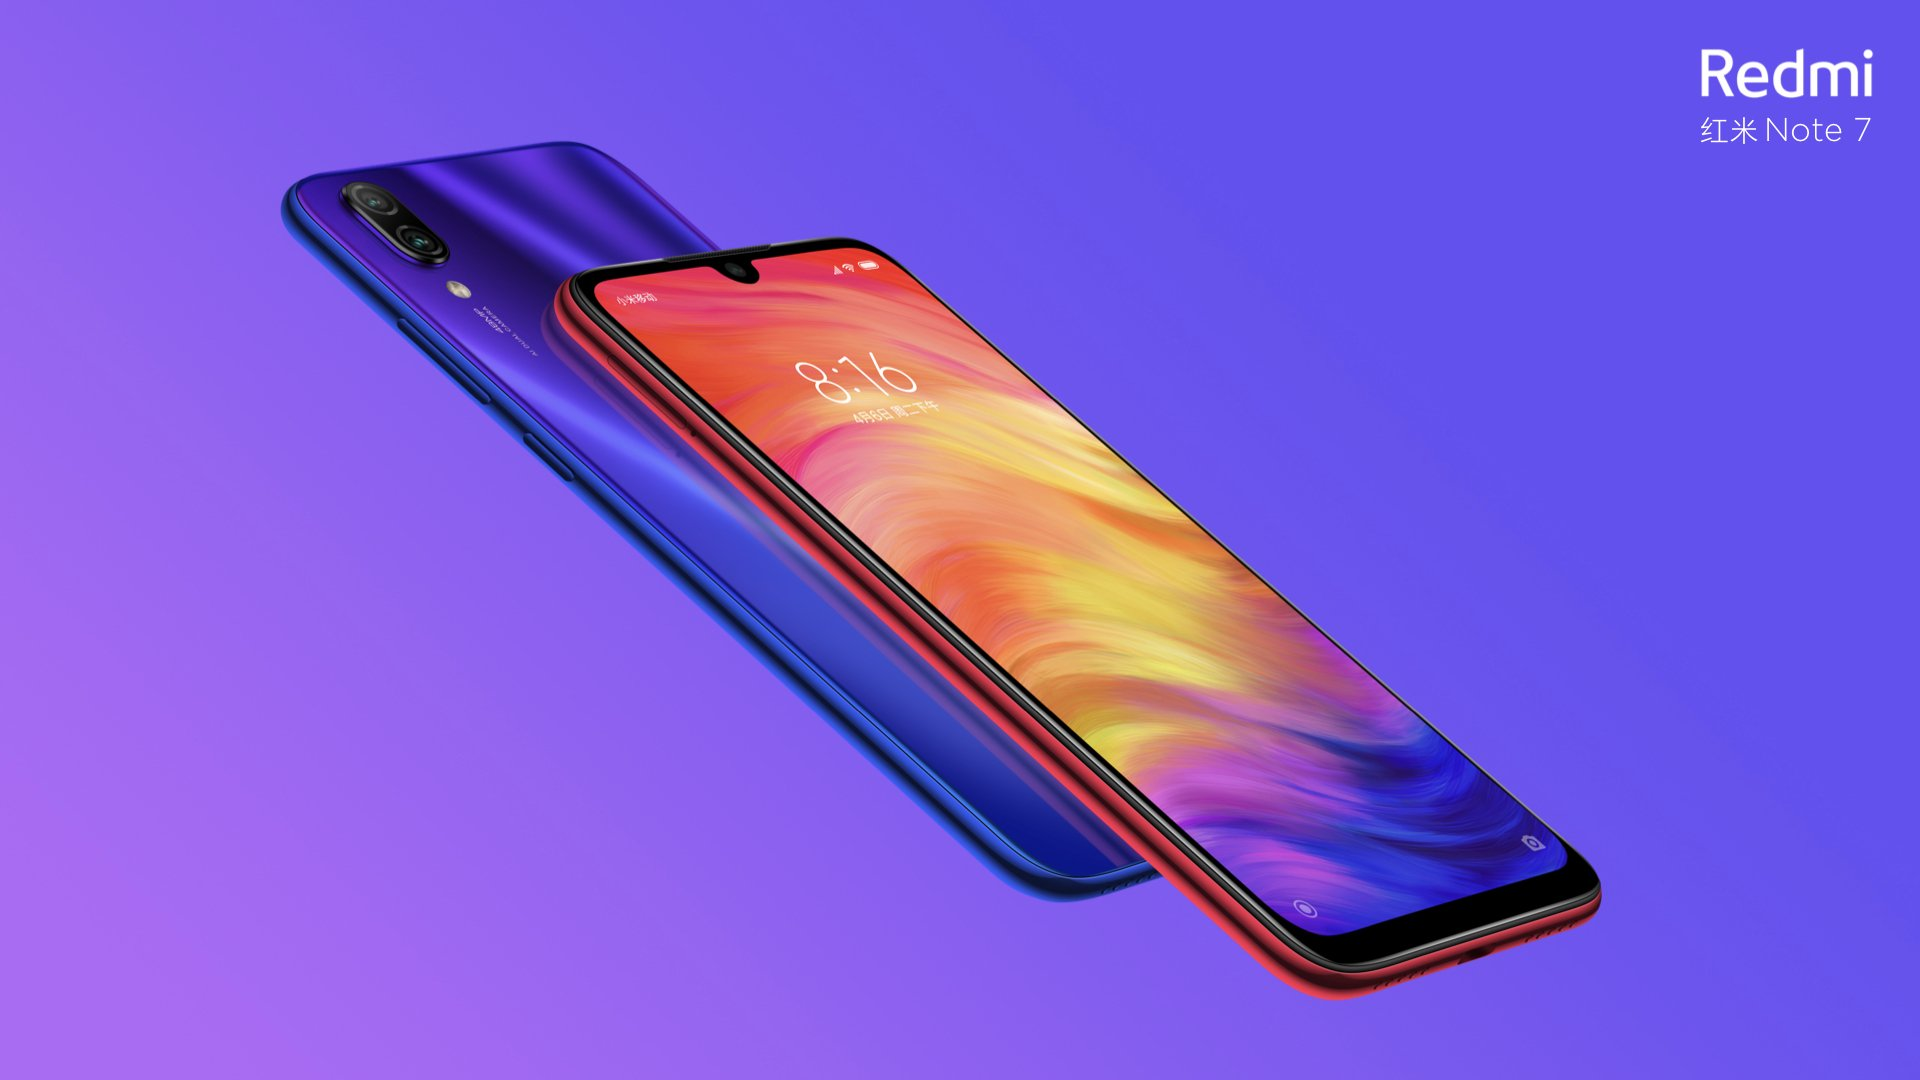 Redmi Note 7 Gone Under 9 Minutes In Its Initially Sale In China